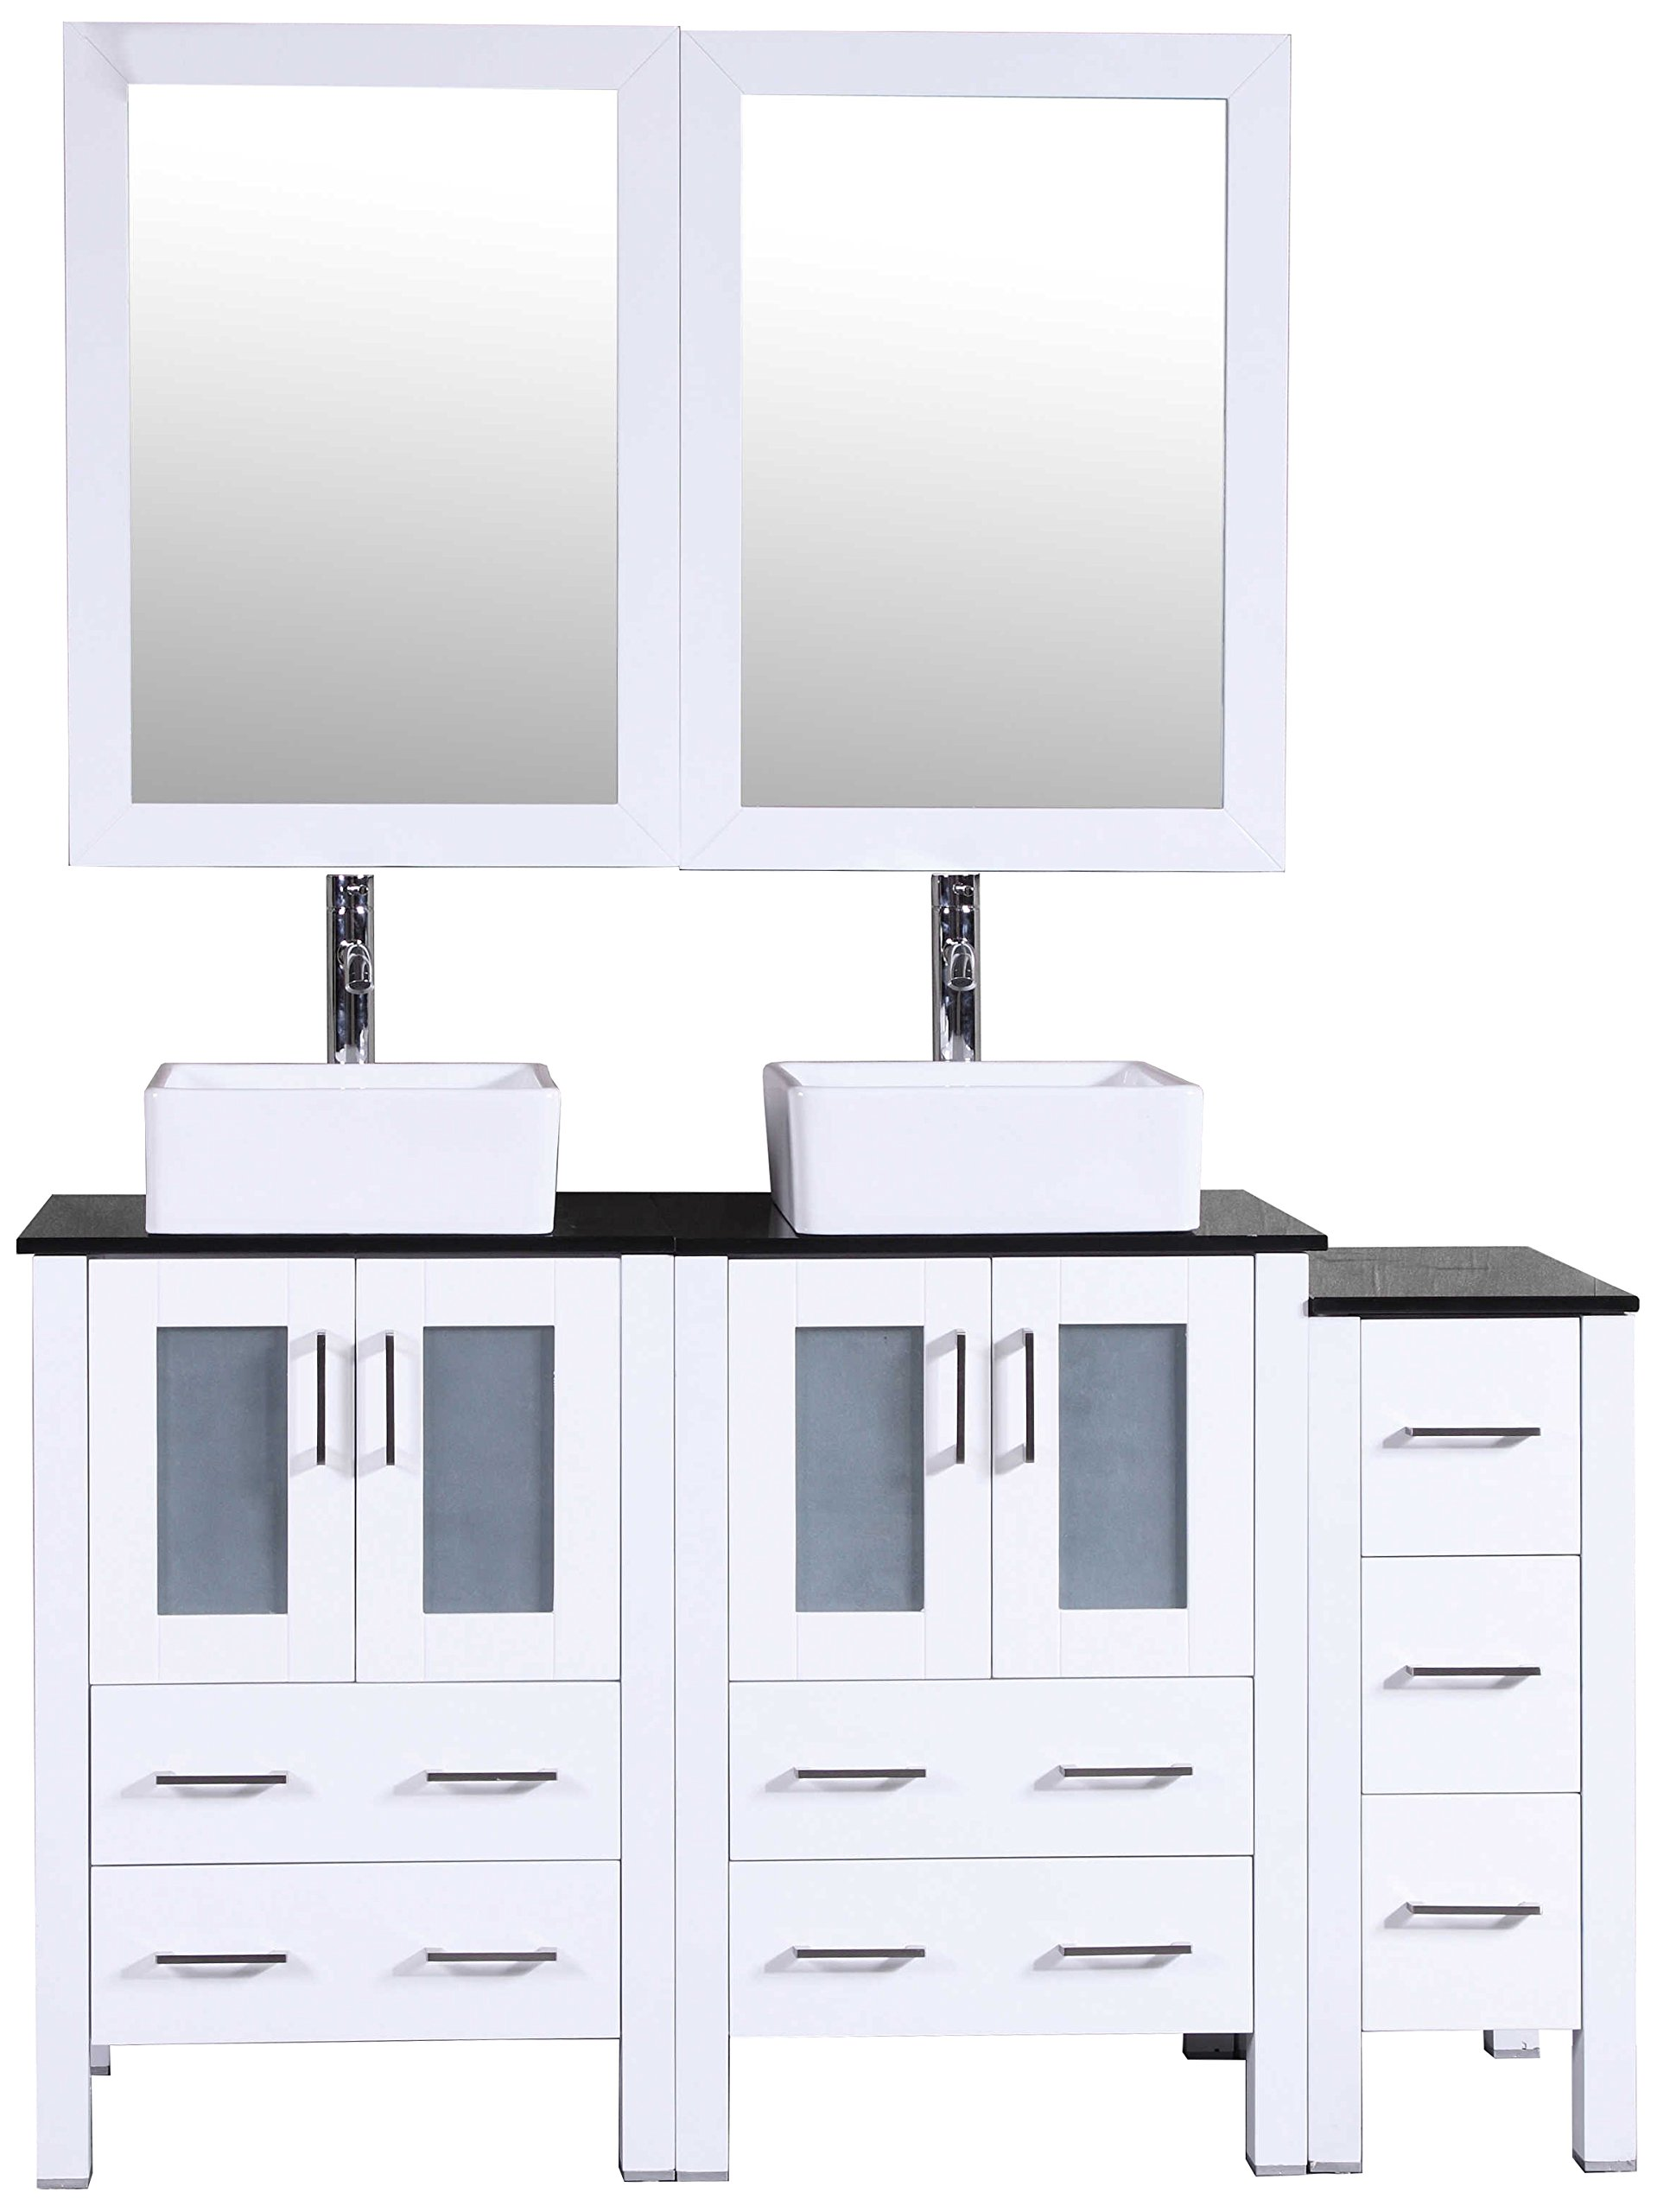 Bosconi Bathroom Vanities 60'' Double Vanity Set With Square Vessel Sinks, Countertops, 2 Cabinets, 2 Mirrors, And 1 Side Cabinet, White/Tempered Black Glass